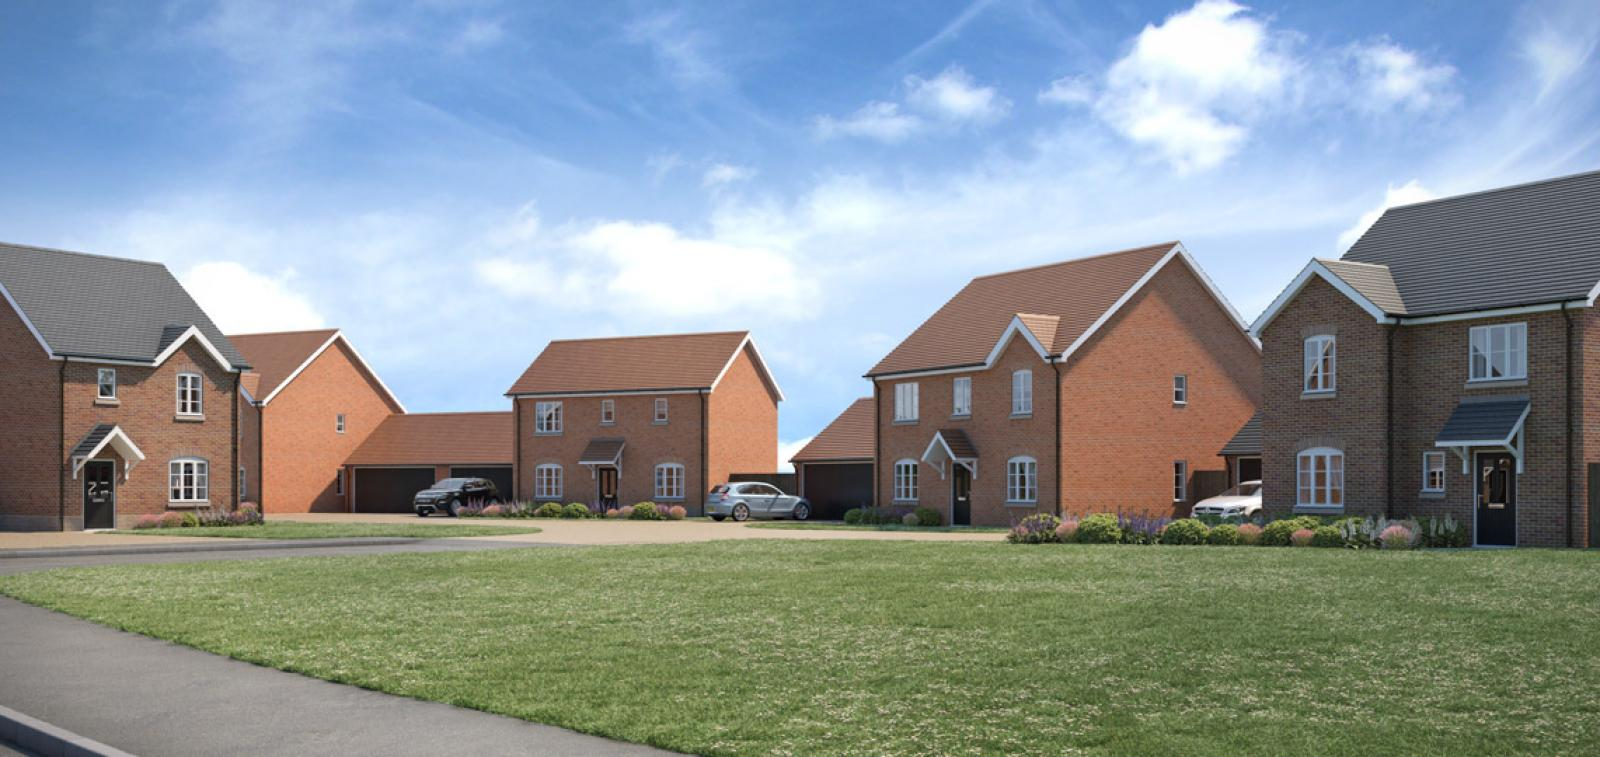 Street scene CGI of the Newlands development in Stoke Lacy